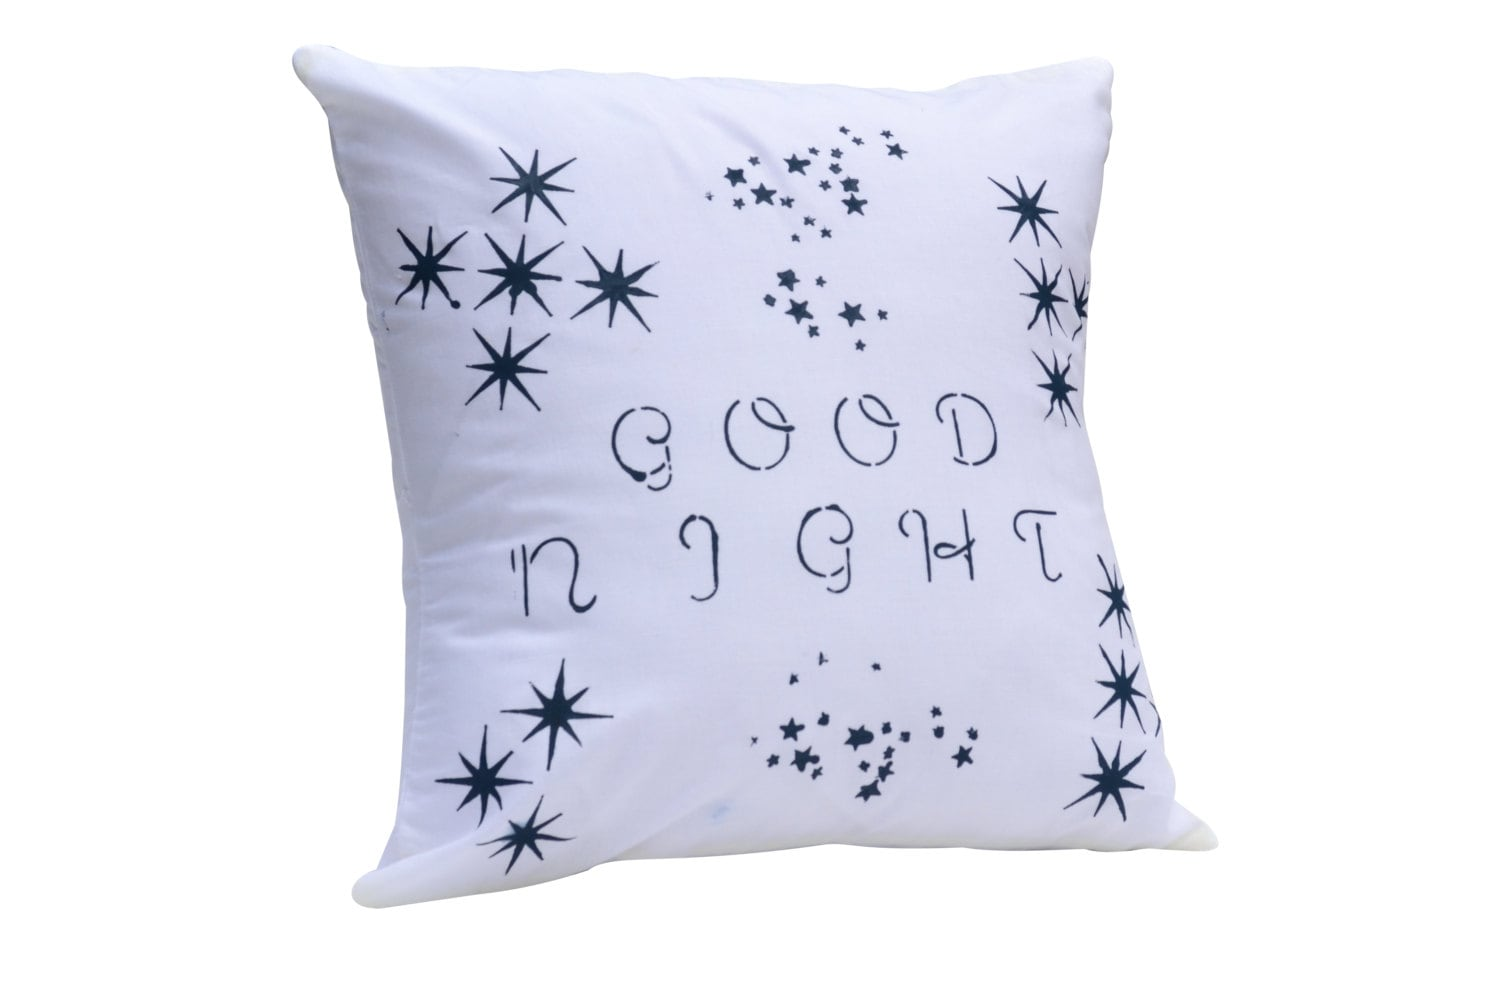 Good Night Hand painted Accent Pillow 16x16 - vlady1